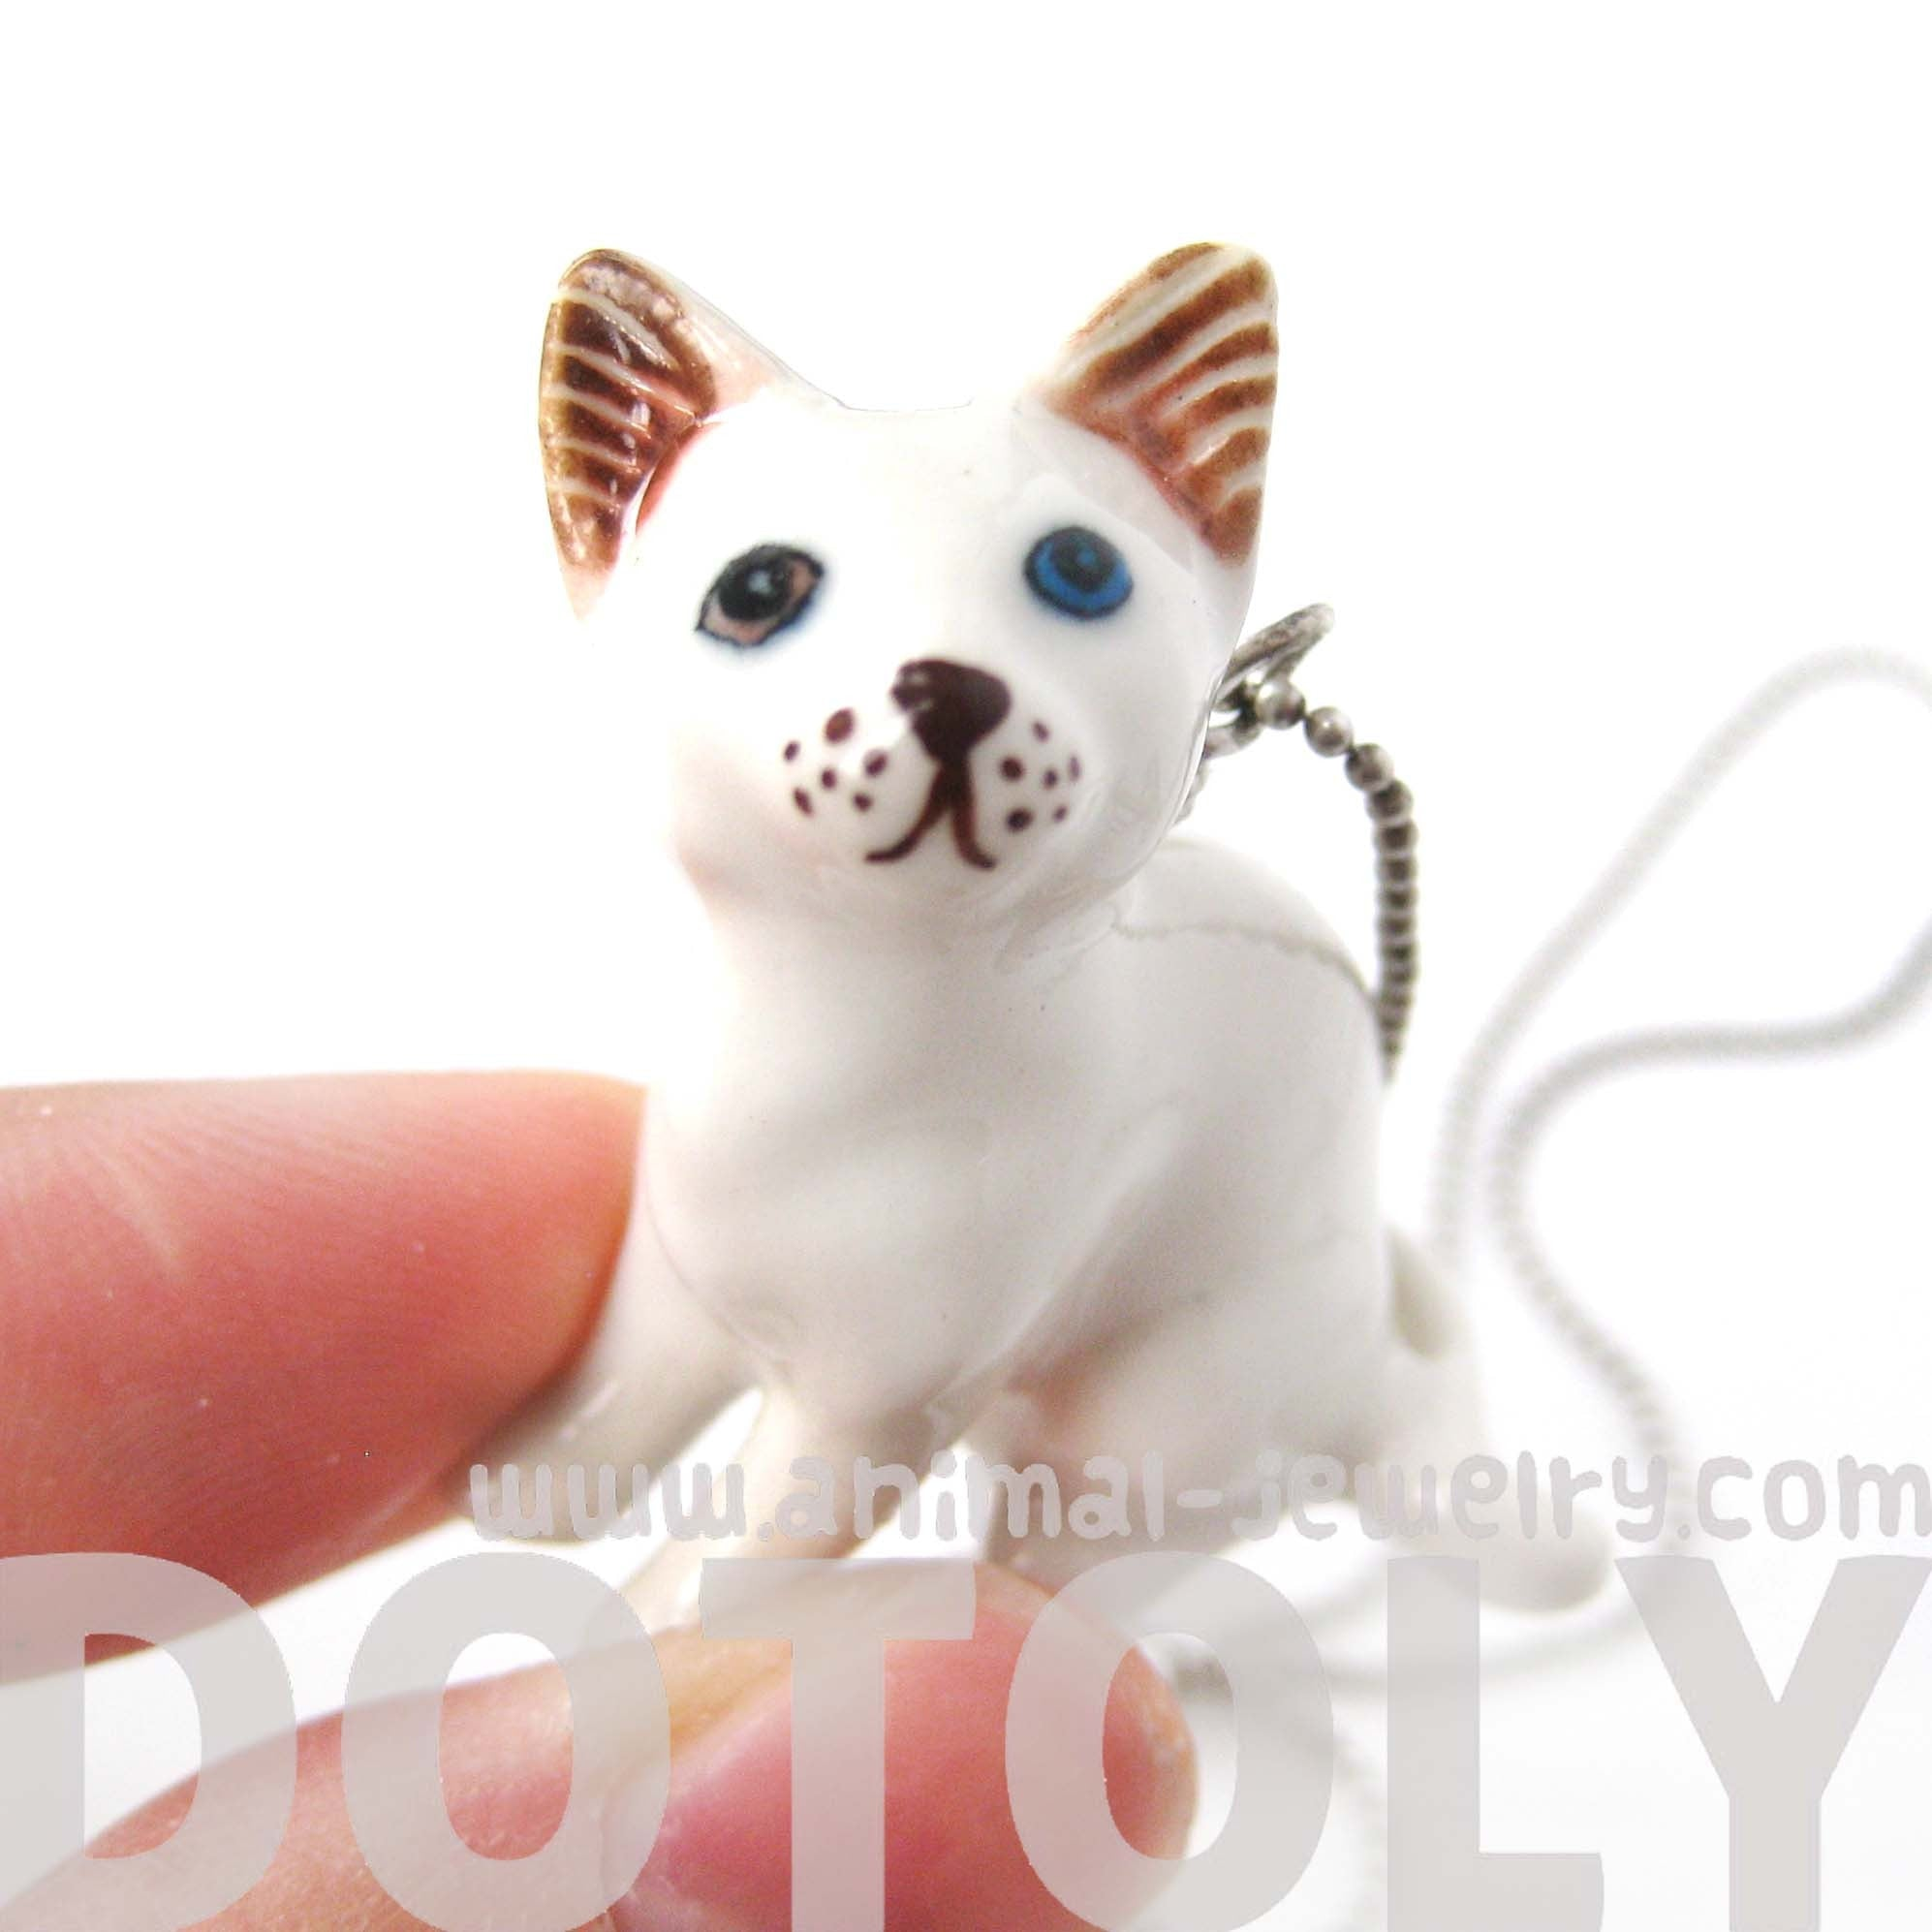 multi-colored-odd-eyed-white-kitty-cat-porcelain-ceramic-animal-pendant-necklace-handmade